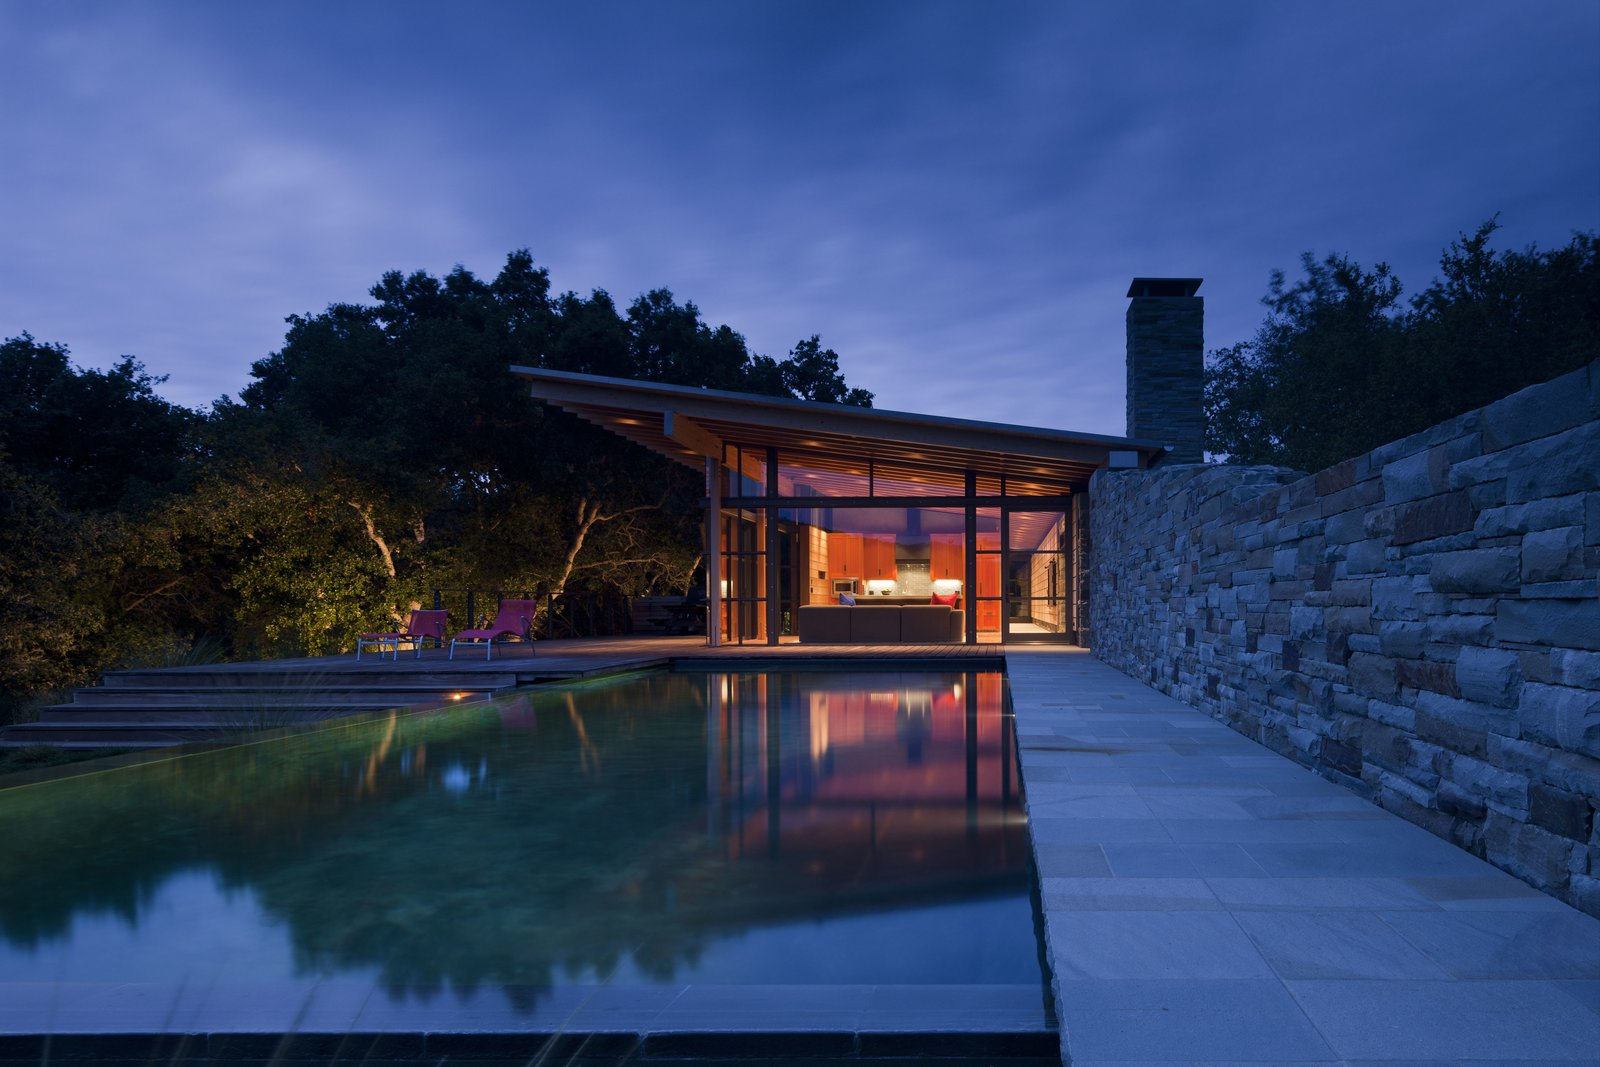 Tagged: Outdoor, Large Patio, Porch, Deck, Wood Patio, Porch, Deck, Trees, Infinity Pools, Tubs, Shower, and Stone Fences, Wall.  Halls Ridge Knoll by Bohlin Cywinski Jackson